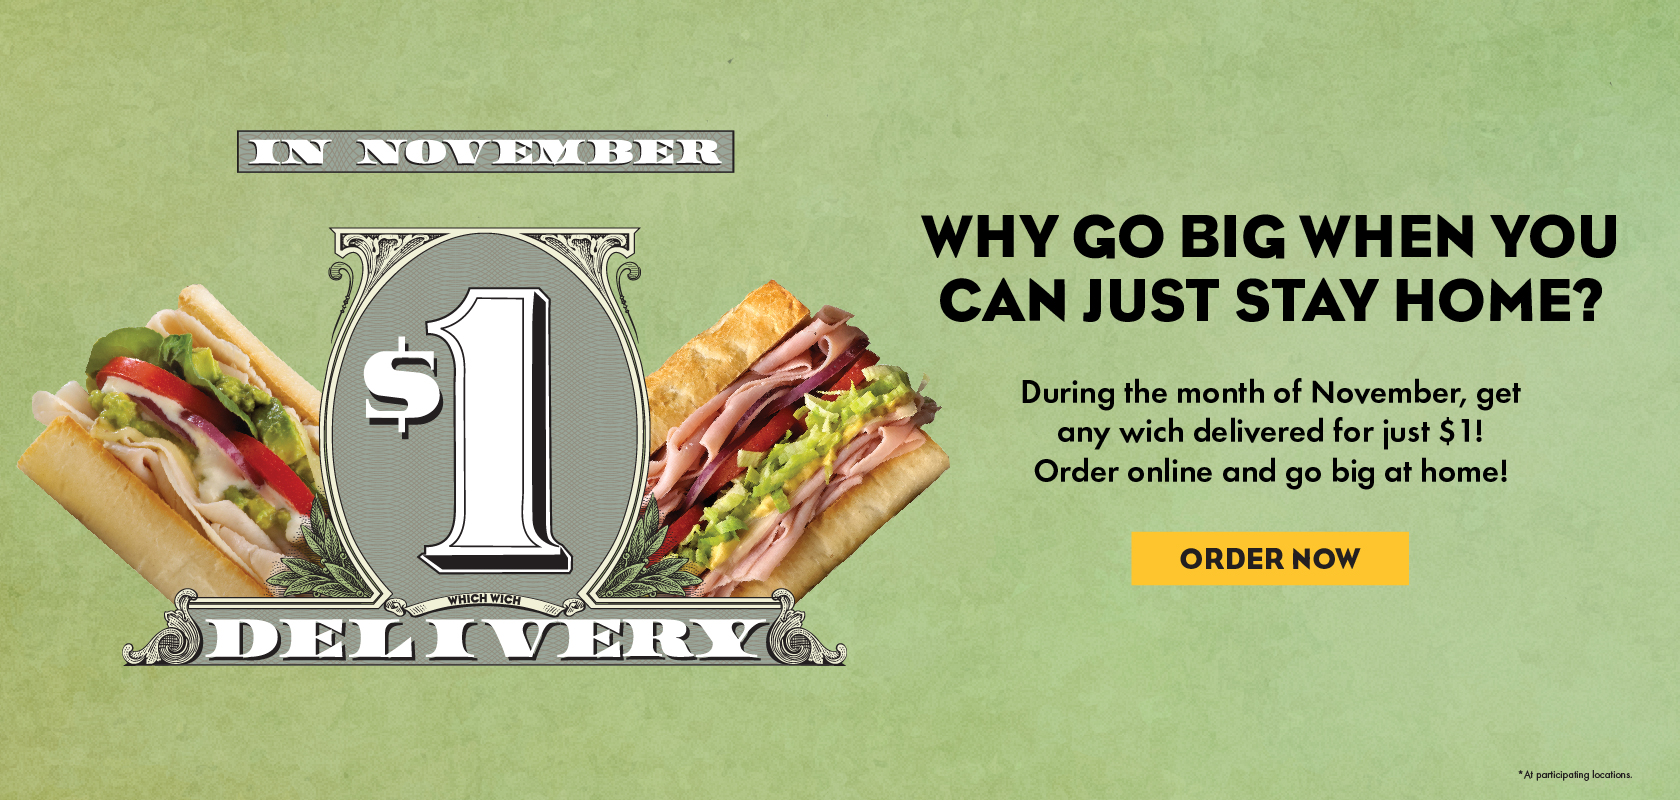 In November Get $1 Delivery - Why Go Bog When You Can Just Stay Home?